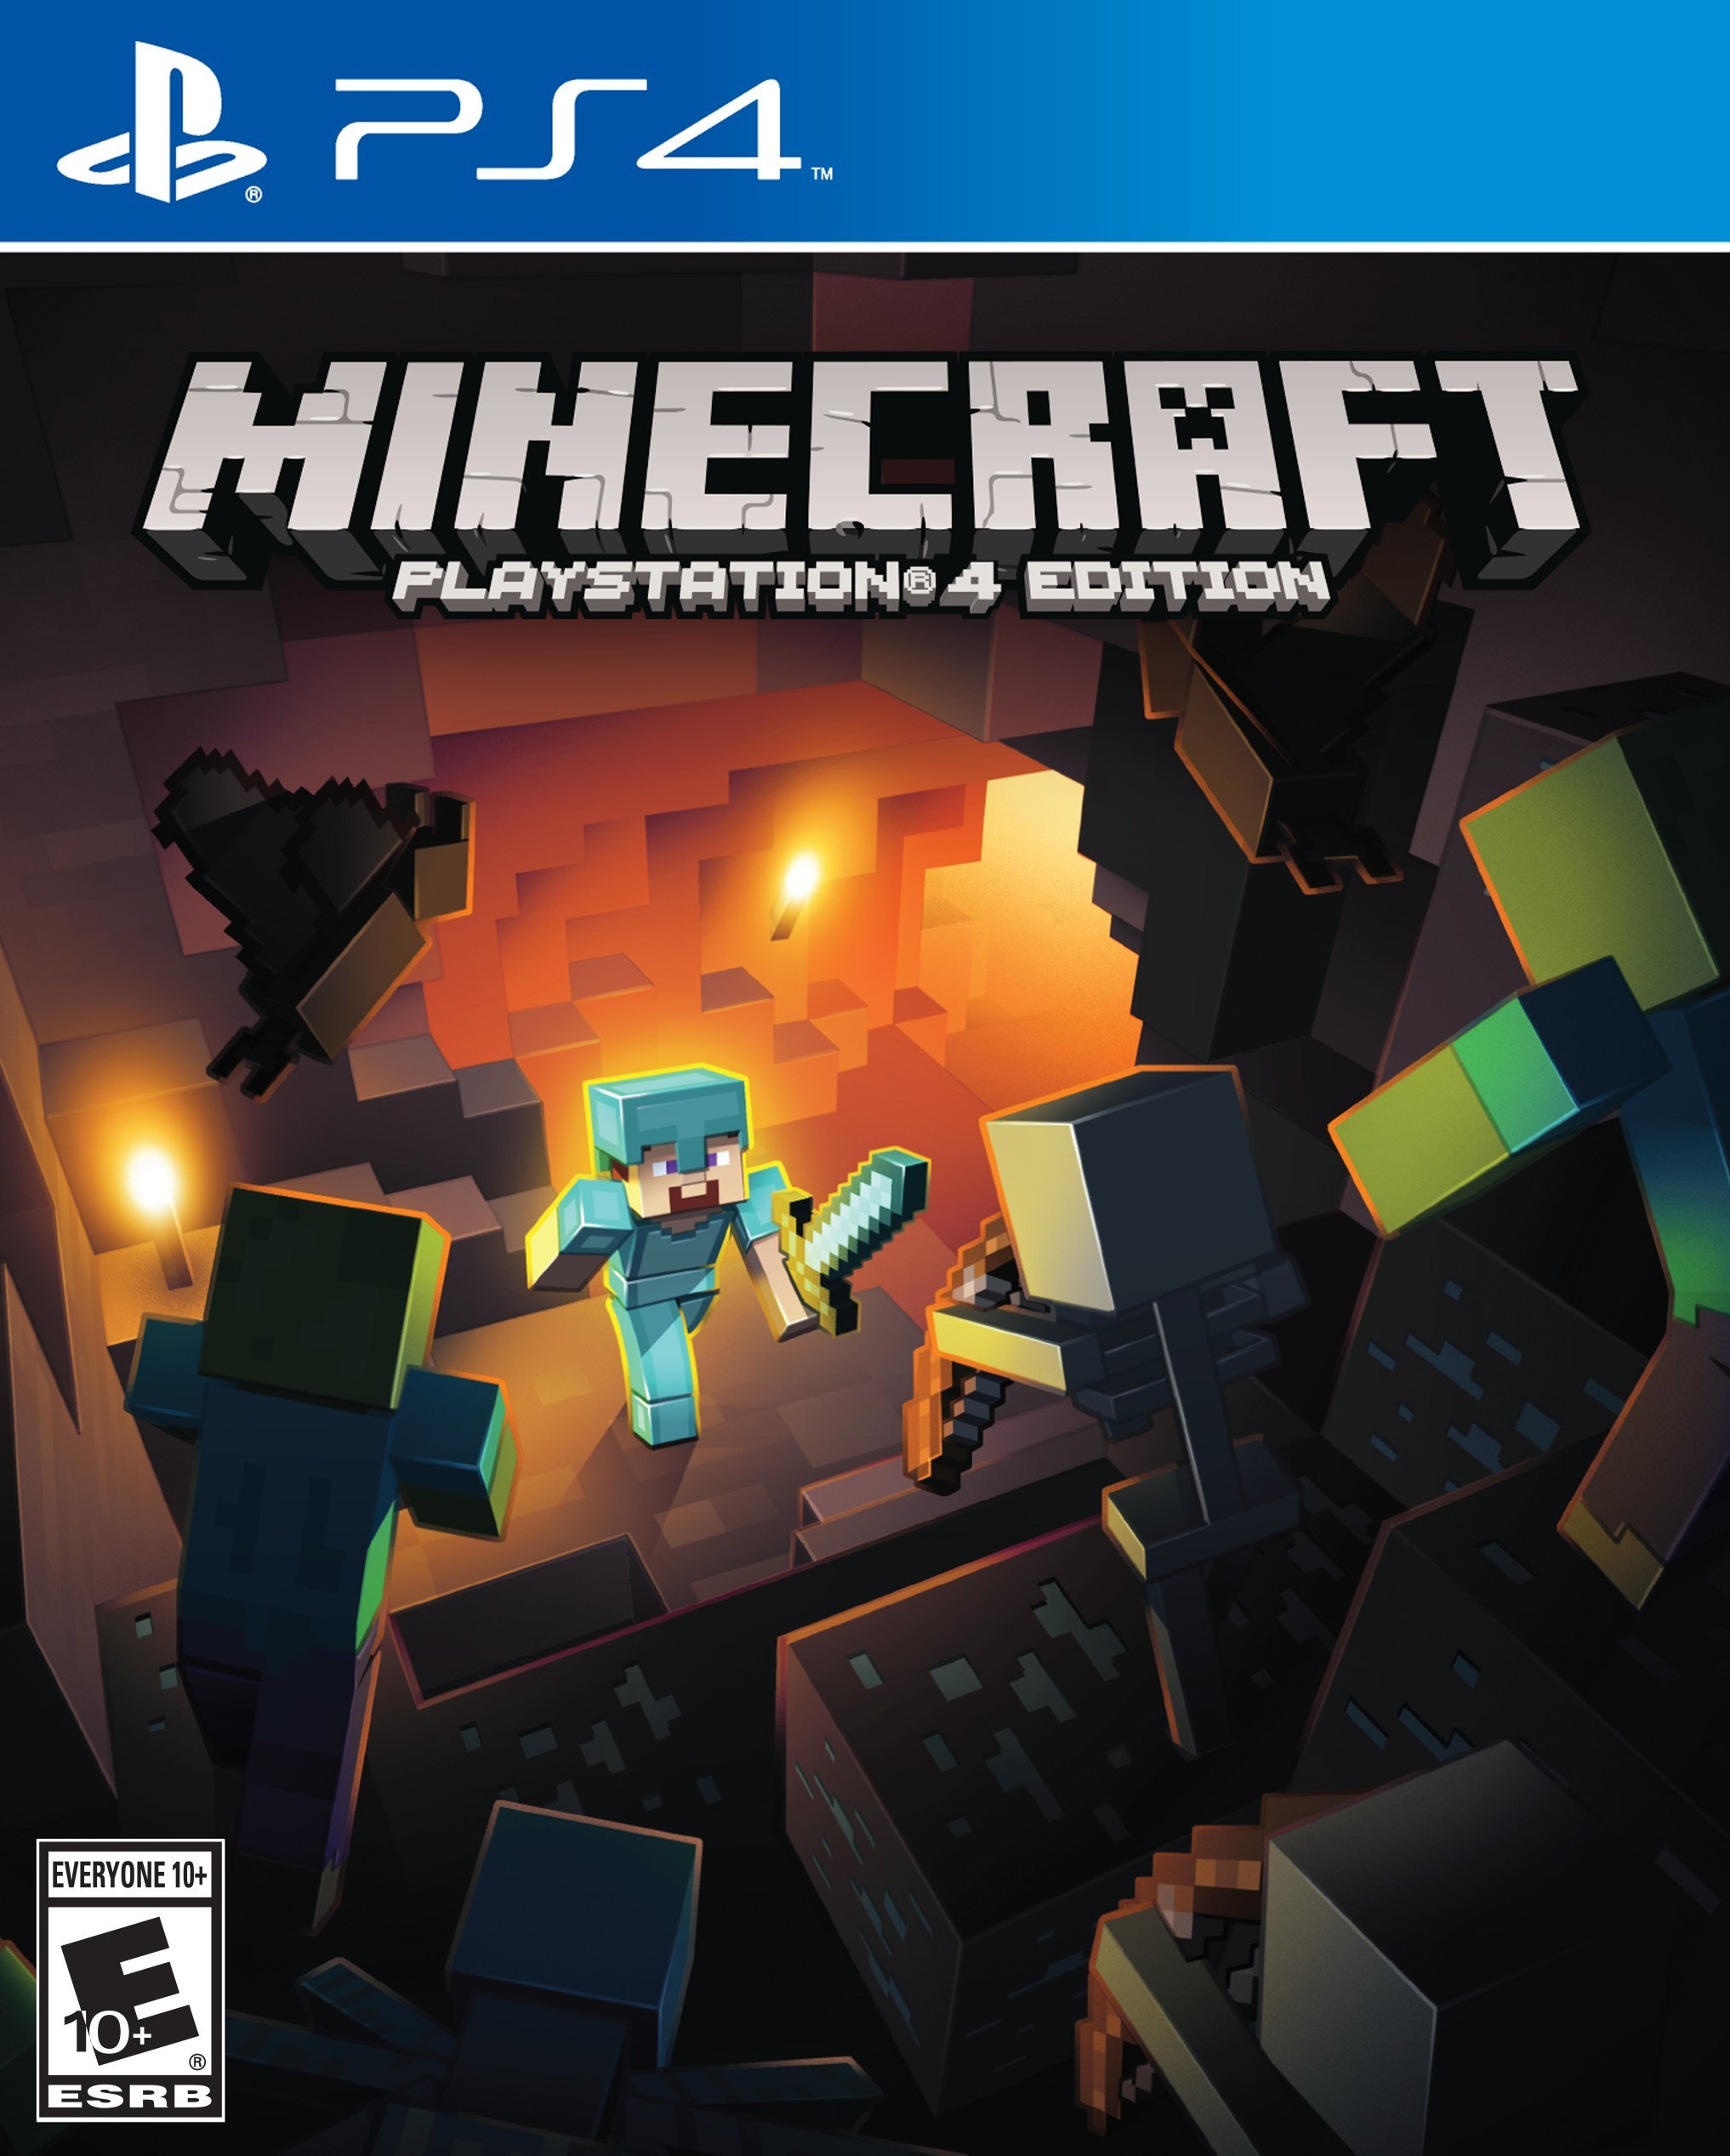 Minecraft PlayStation 4 Edition [PS4] 5.05 / 6.72 / 7.02 [EUR] (2019) [Русский] (v2.06)